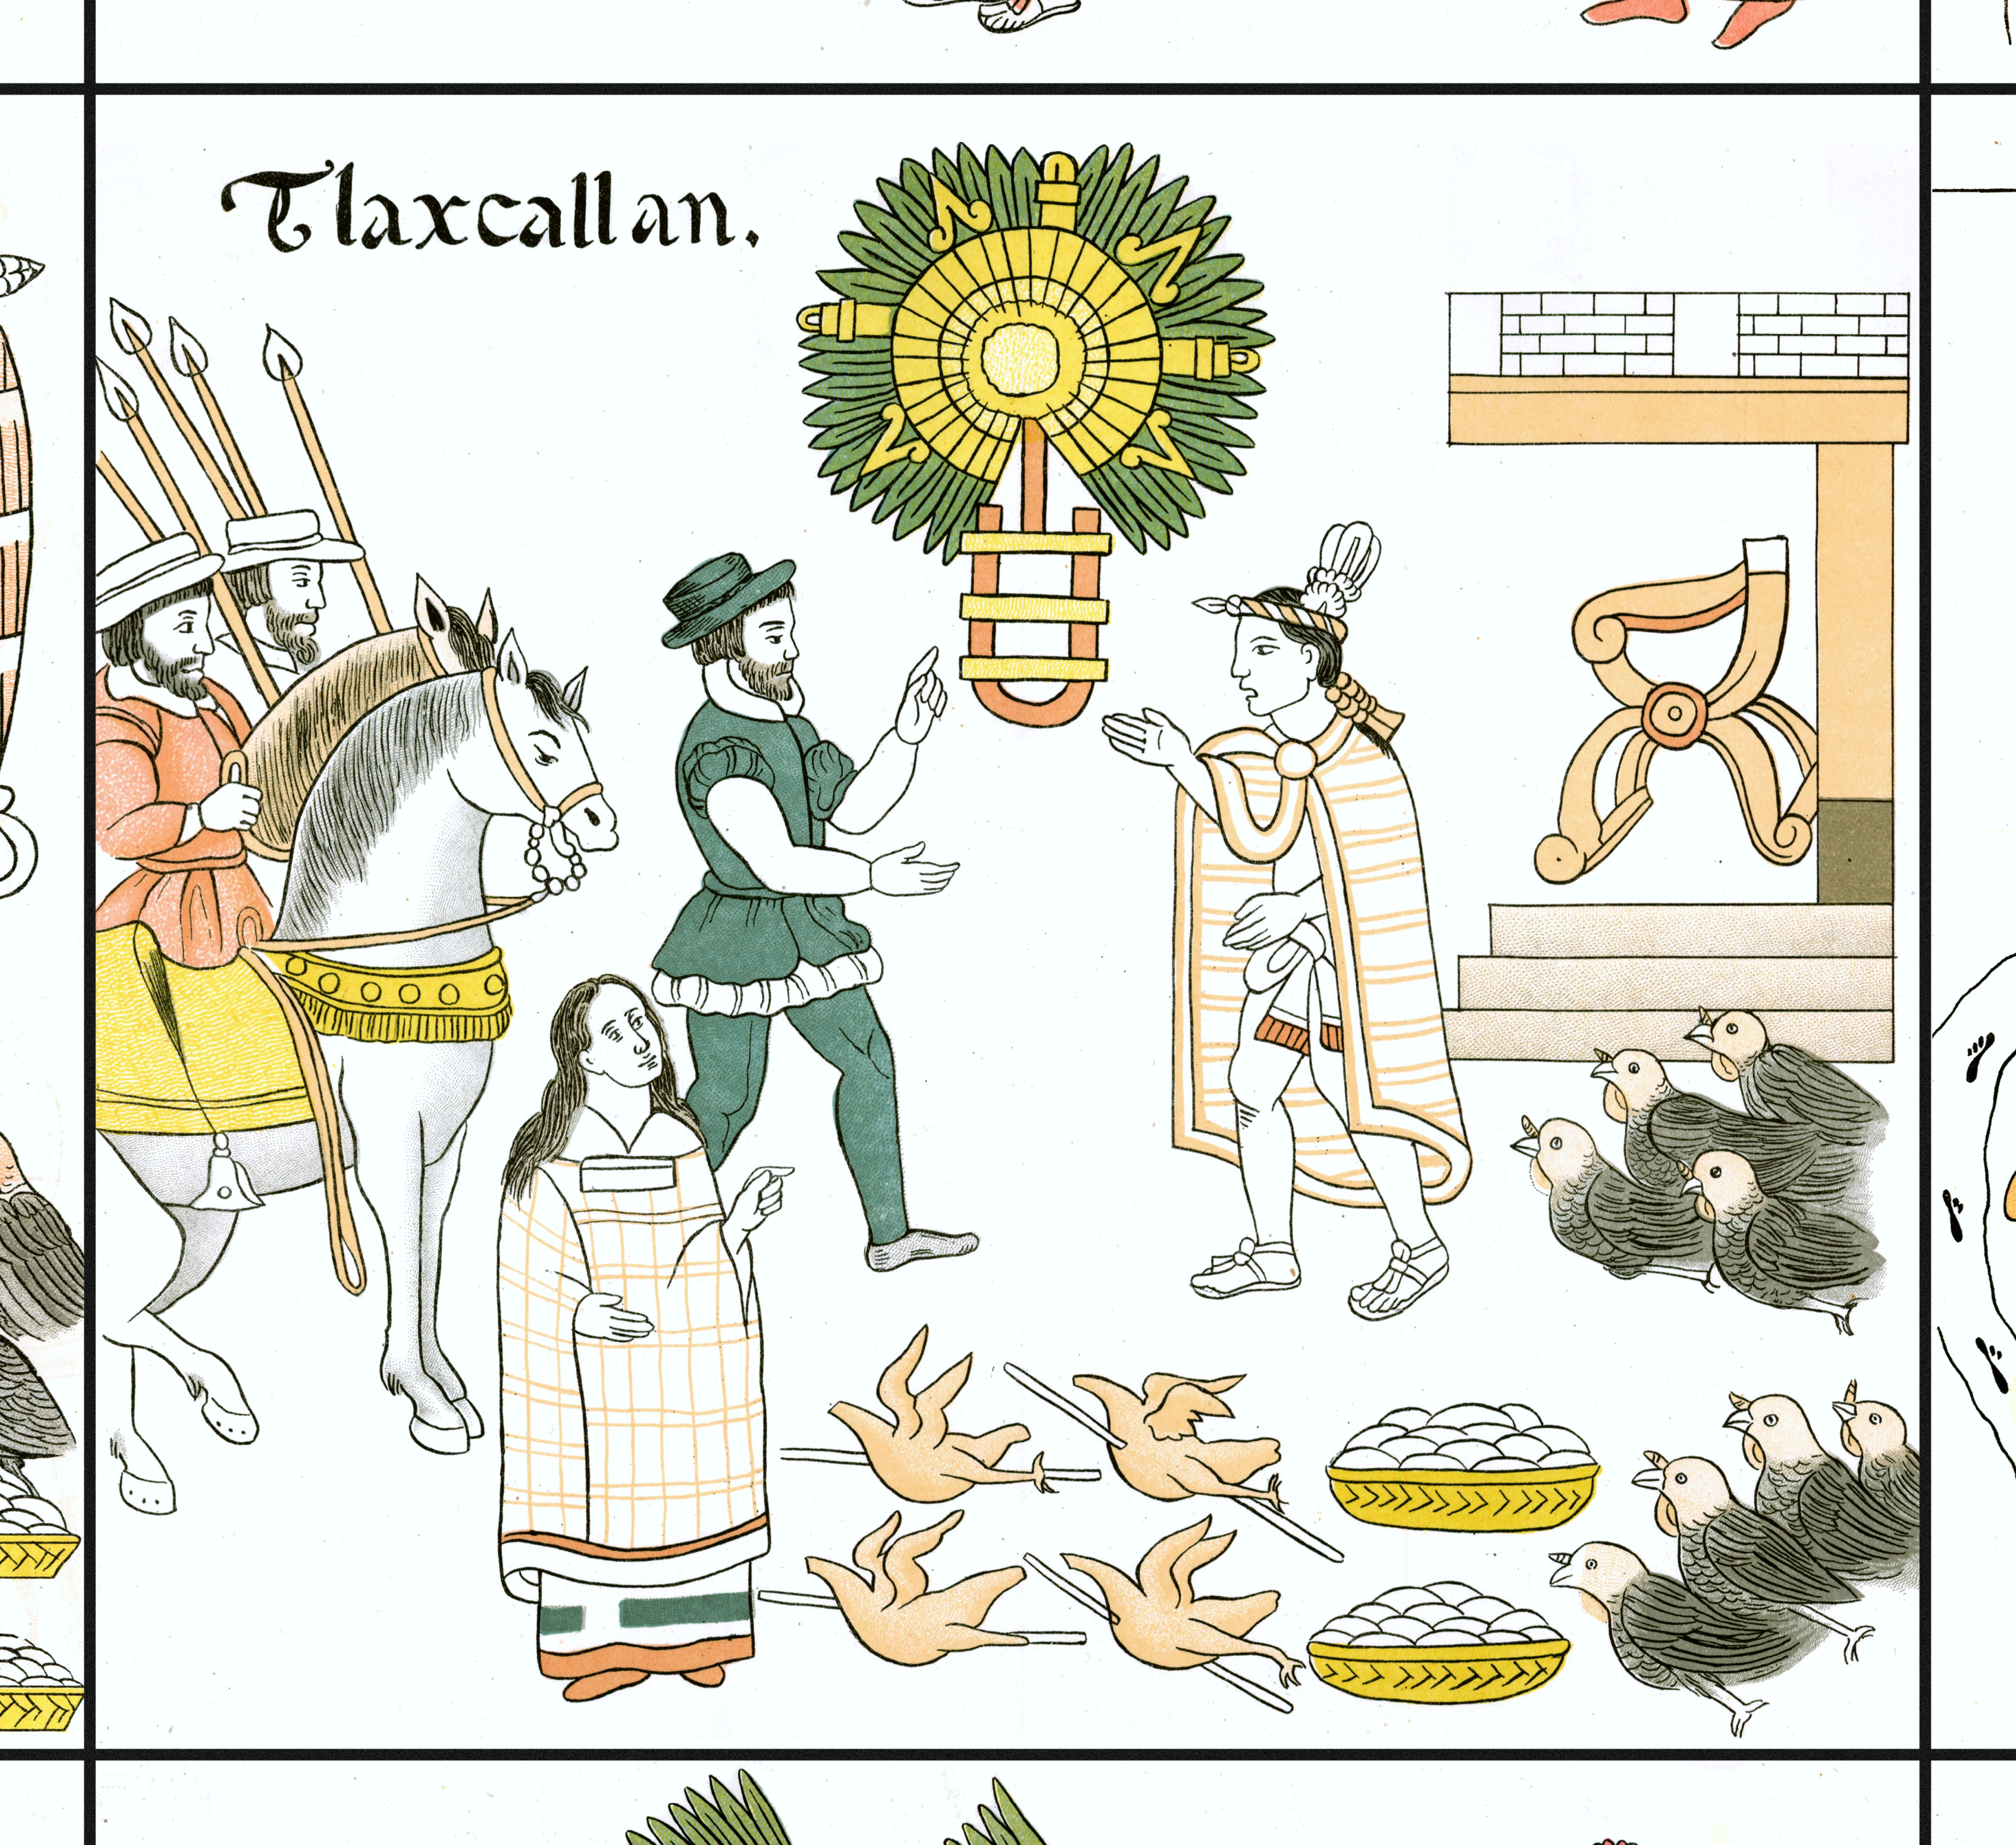 FIGURE 27. Cell 29: Tlaxcala and the First Sunrise (detail).